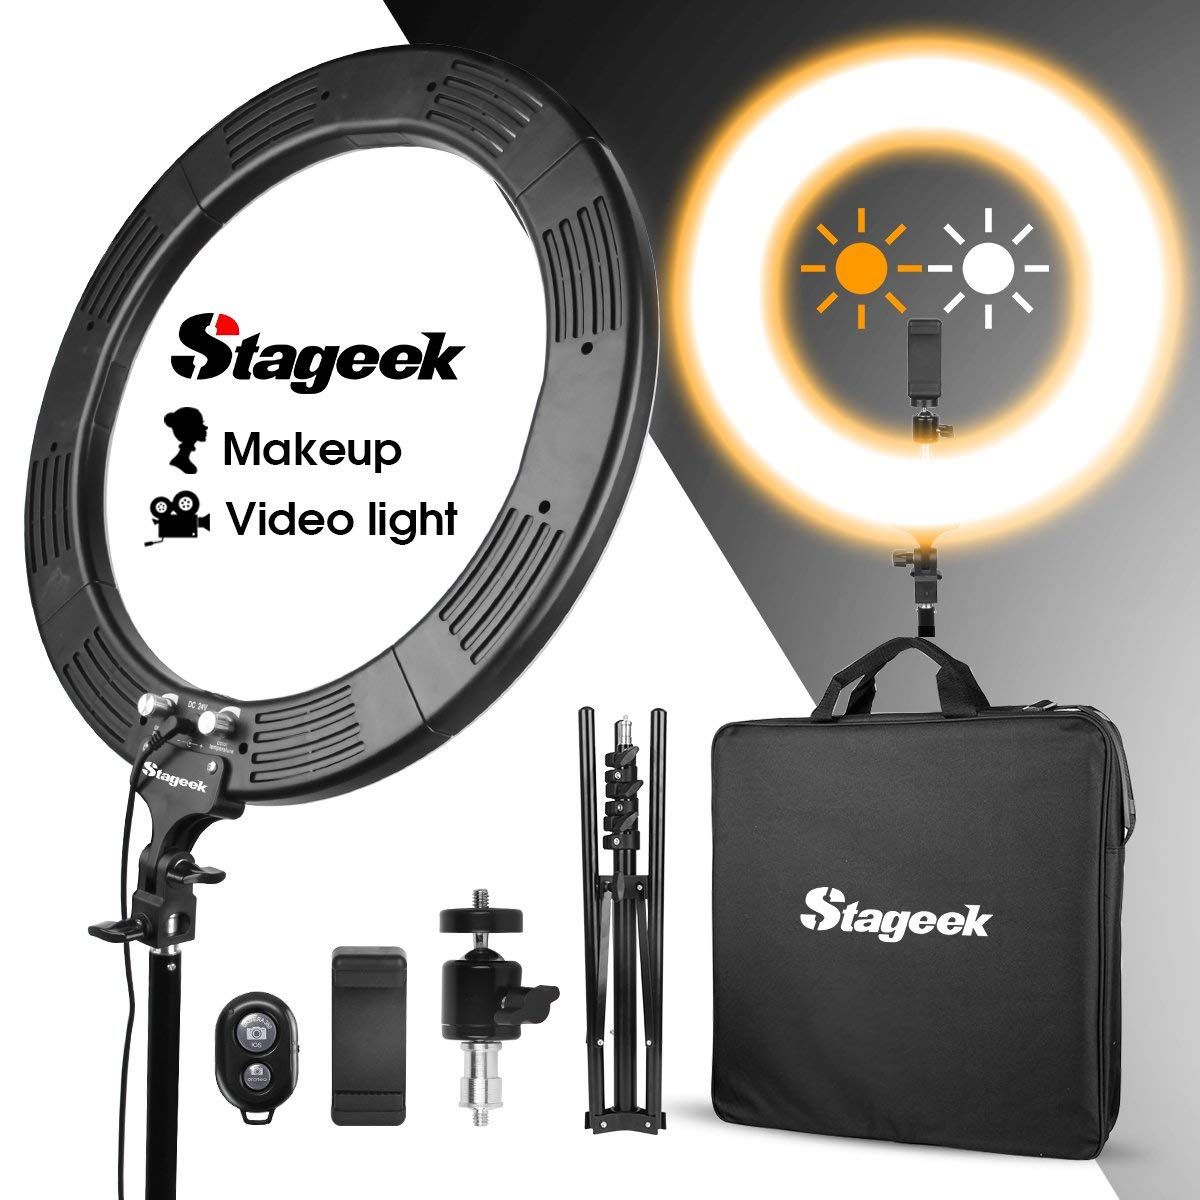 """LED Ring Light, Stageek 18"""" Dimmable SMD LED Ring Light, 60W 5600K Bi-Color Camera Photo Video Lighting Kit with Tripod Stand, Phone Holder, for Smartphone,Youtube, Self-Portrait Makeup Video Shooting"""